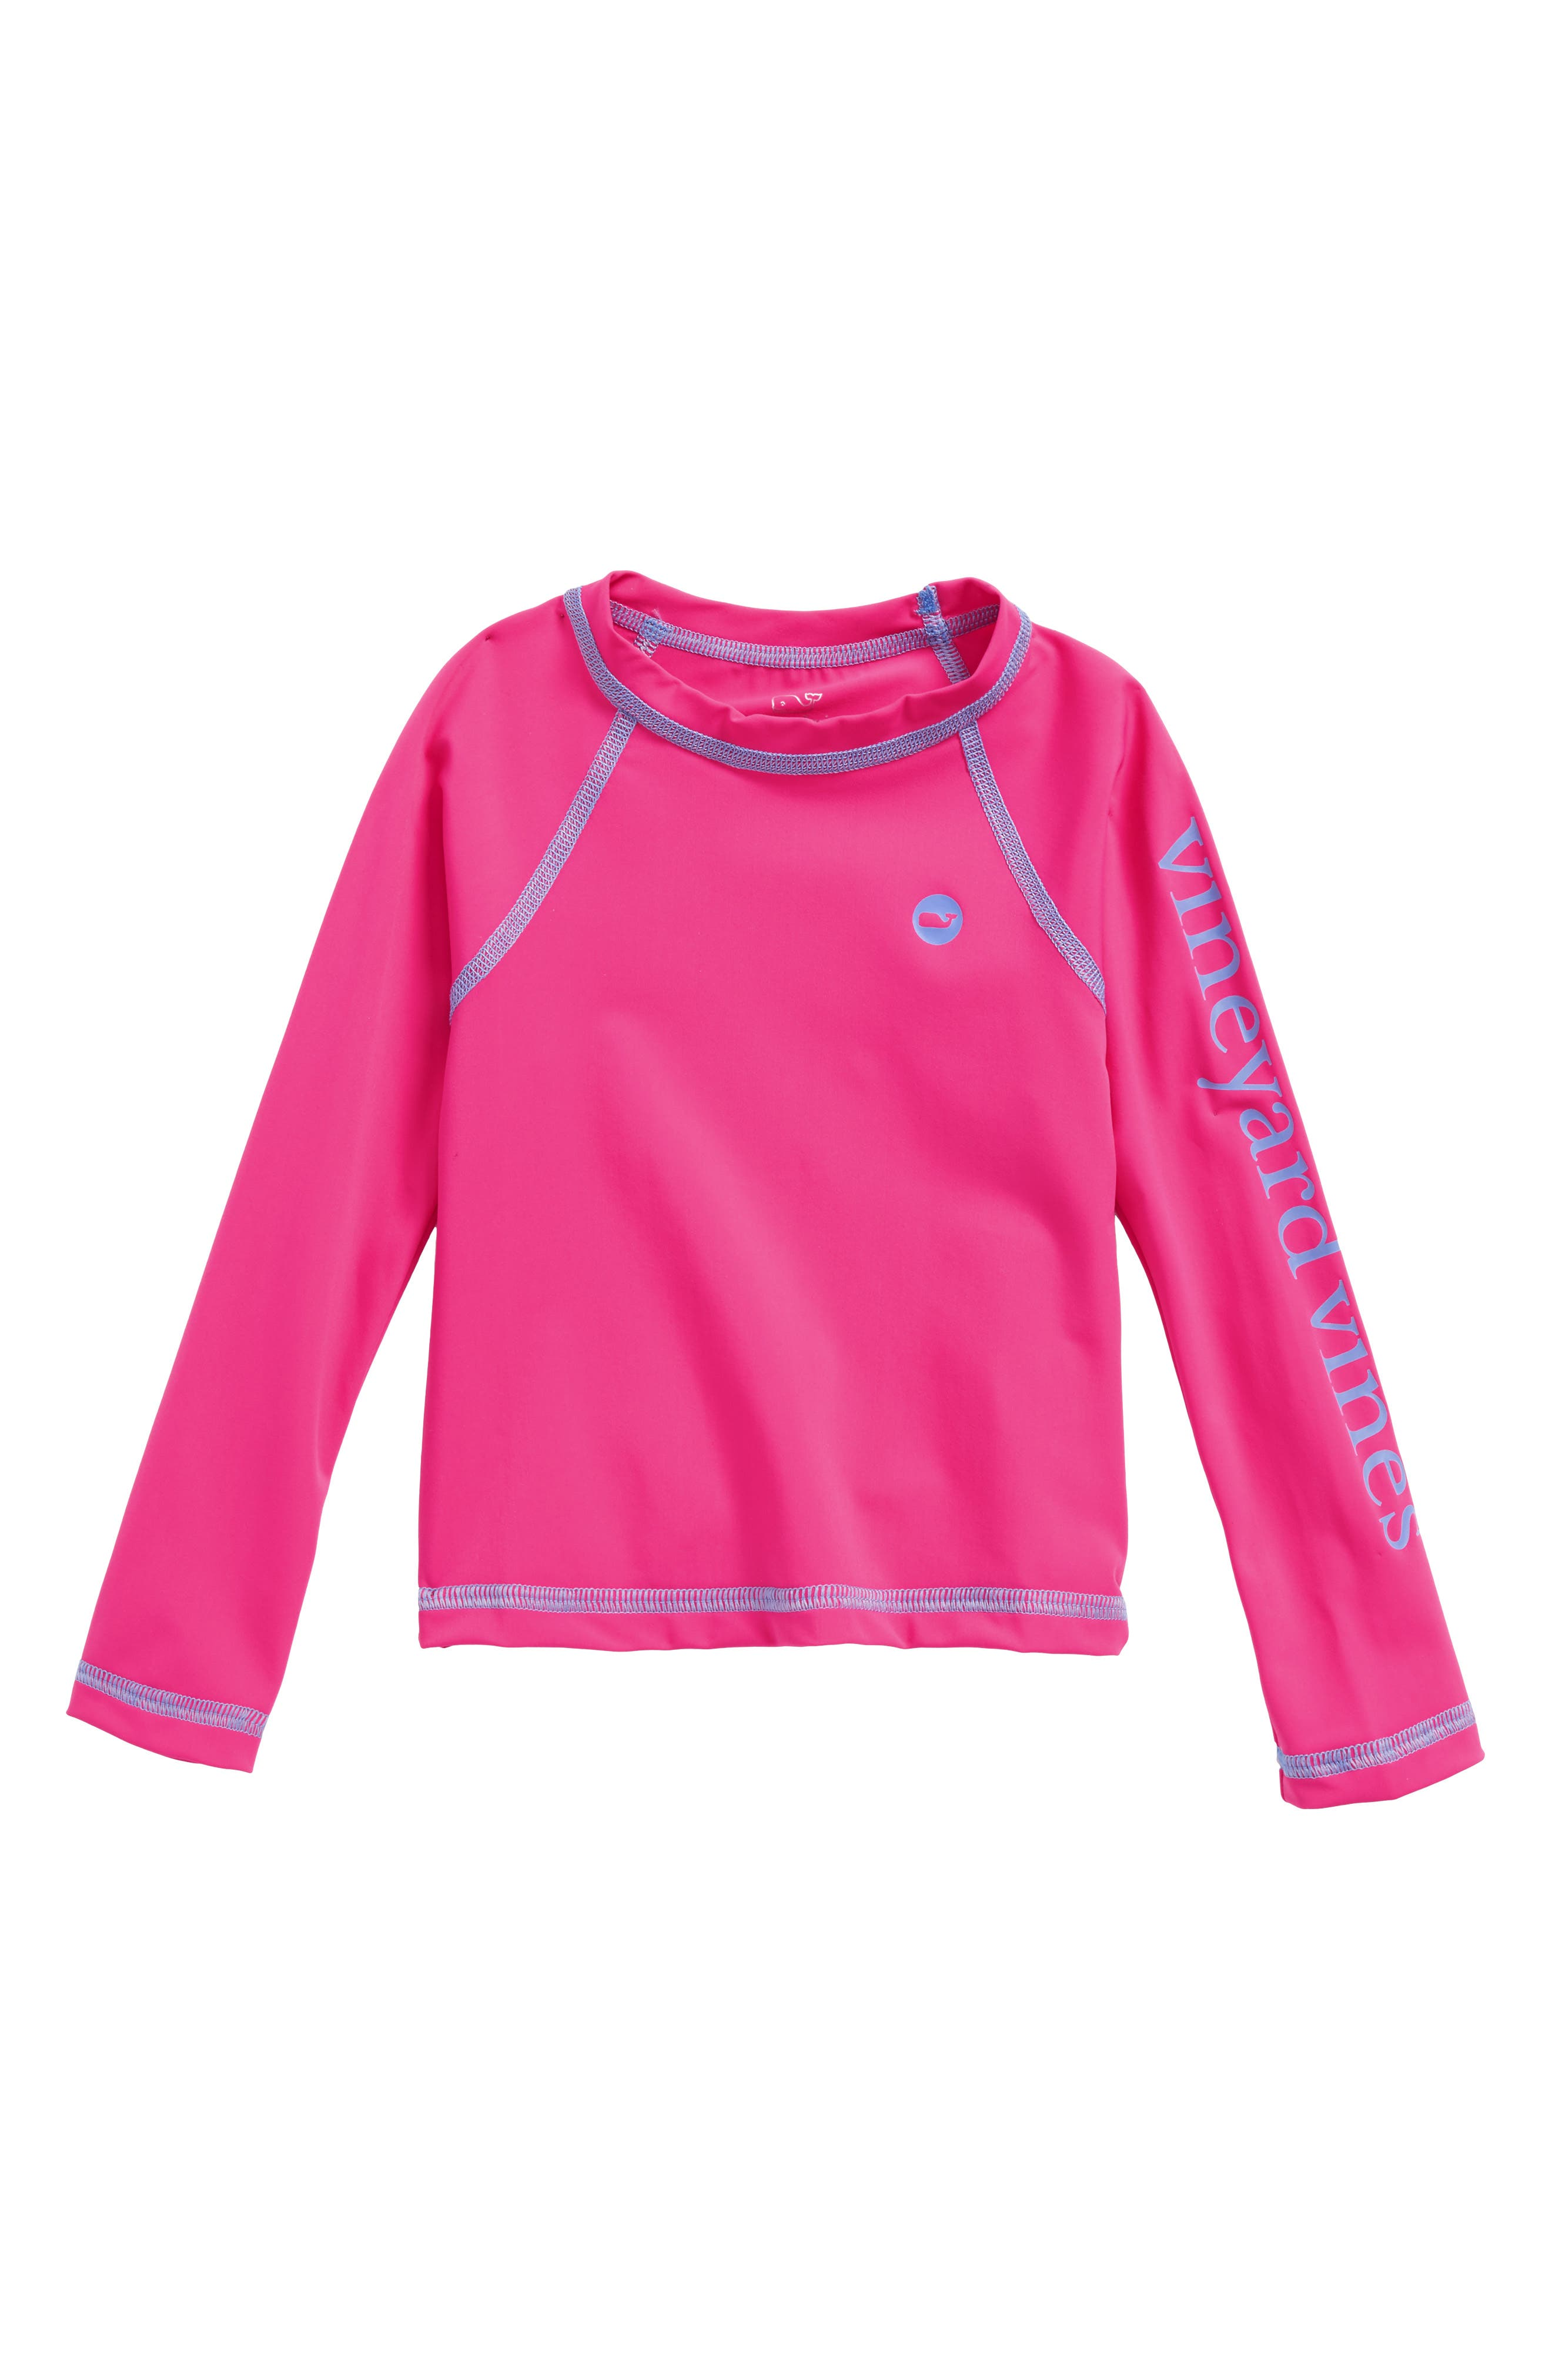 Main Image - vineyard vines Solid Long Sleeve Rashguard (Toddler Girls)